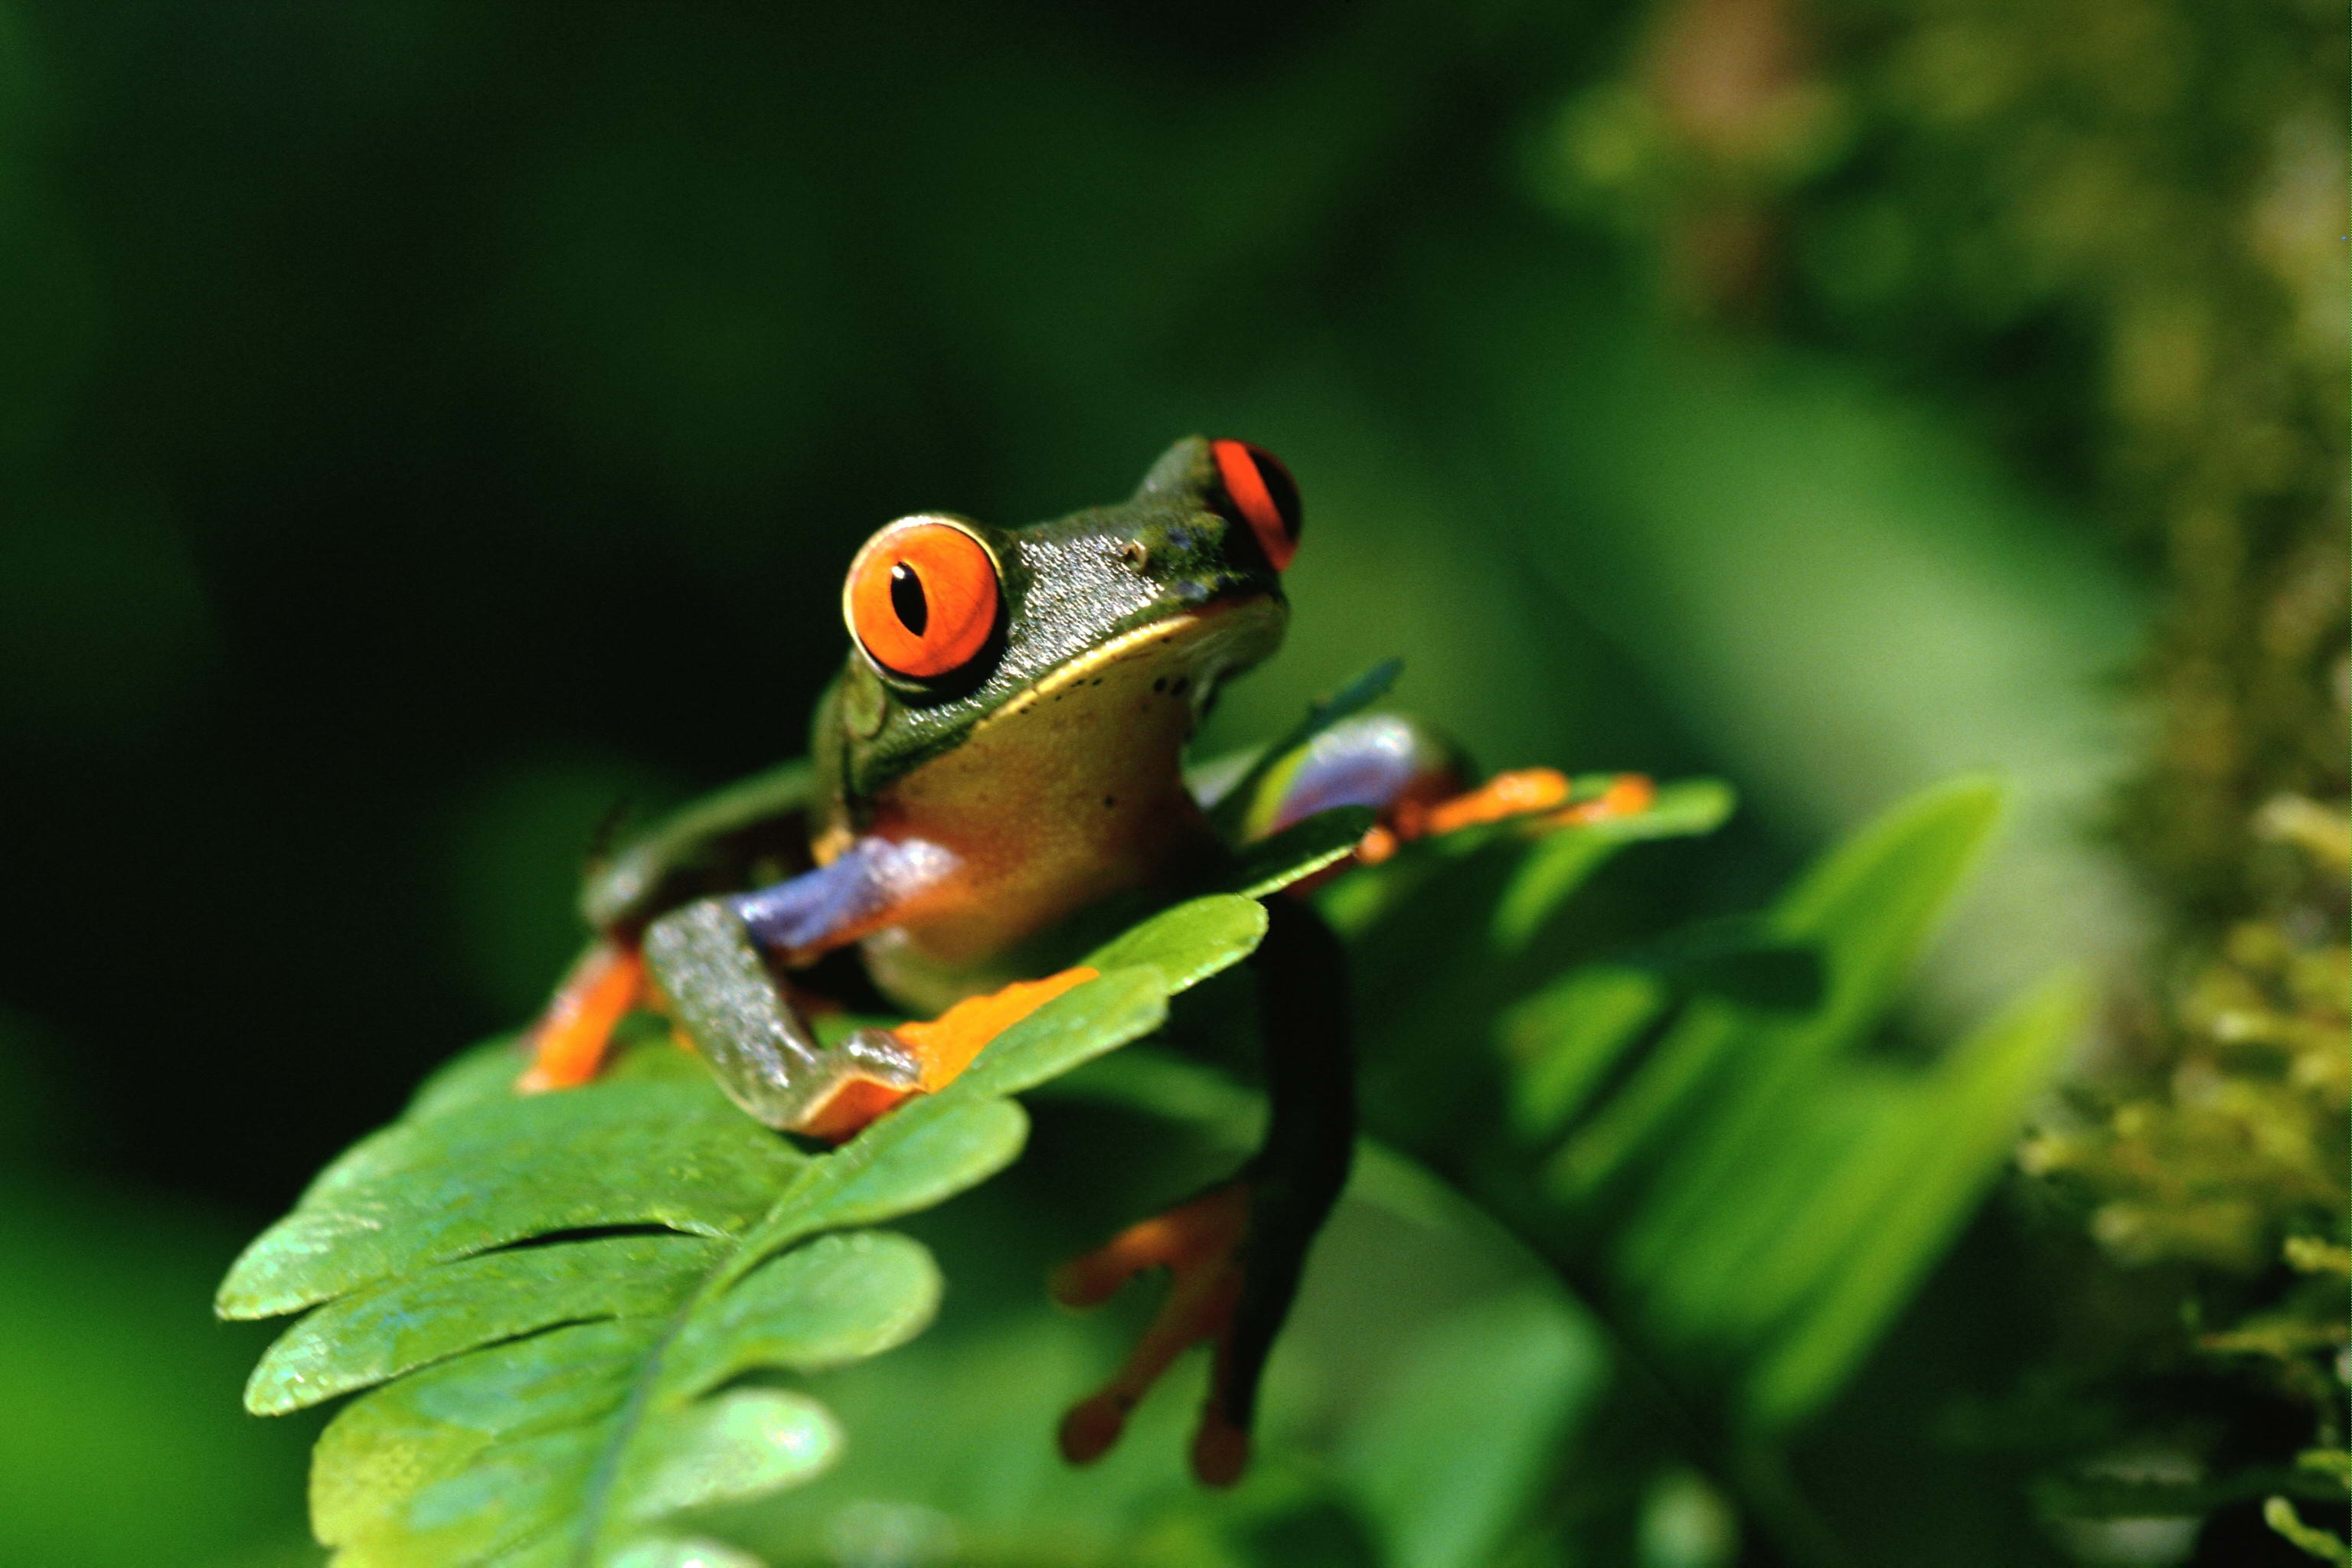 Res: 3072x2048, Frogs images Tree Frog HD wallpaper and background photos